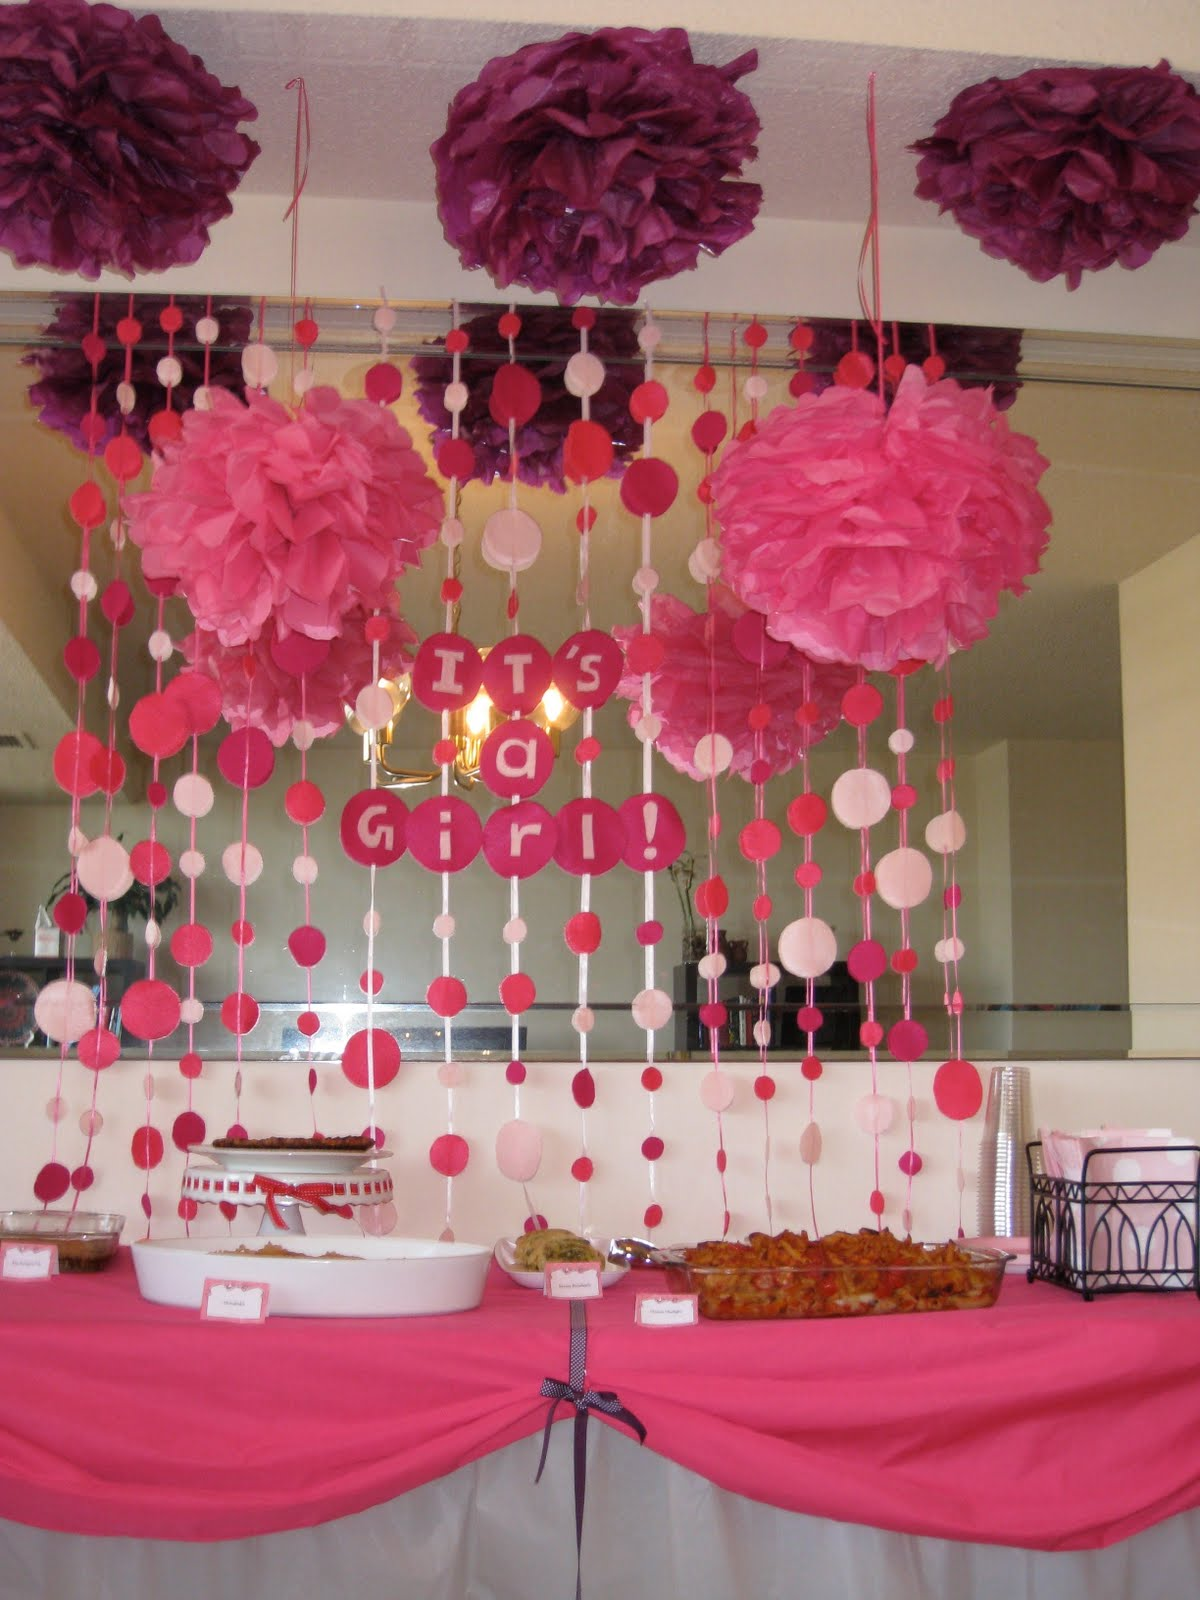 Baby Shower Food Ideas: Baby Shower Ideas For A Girl